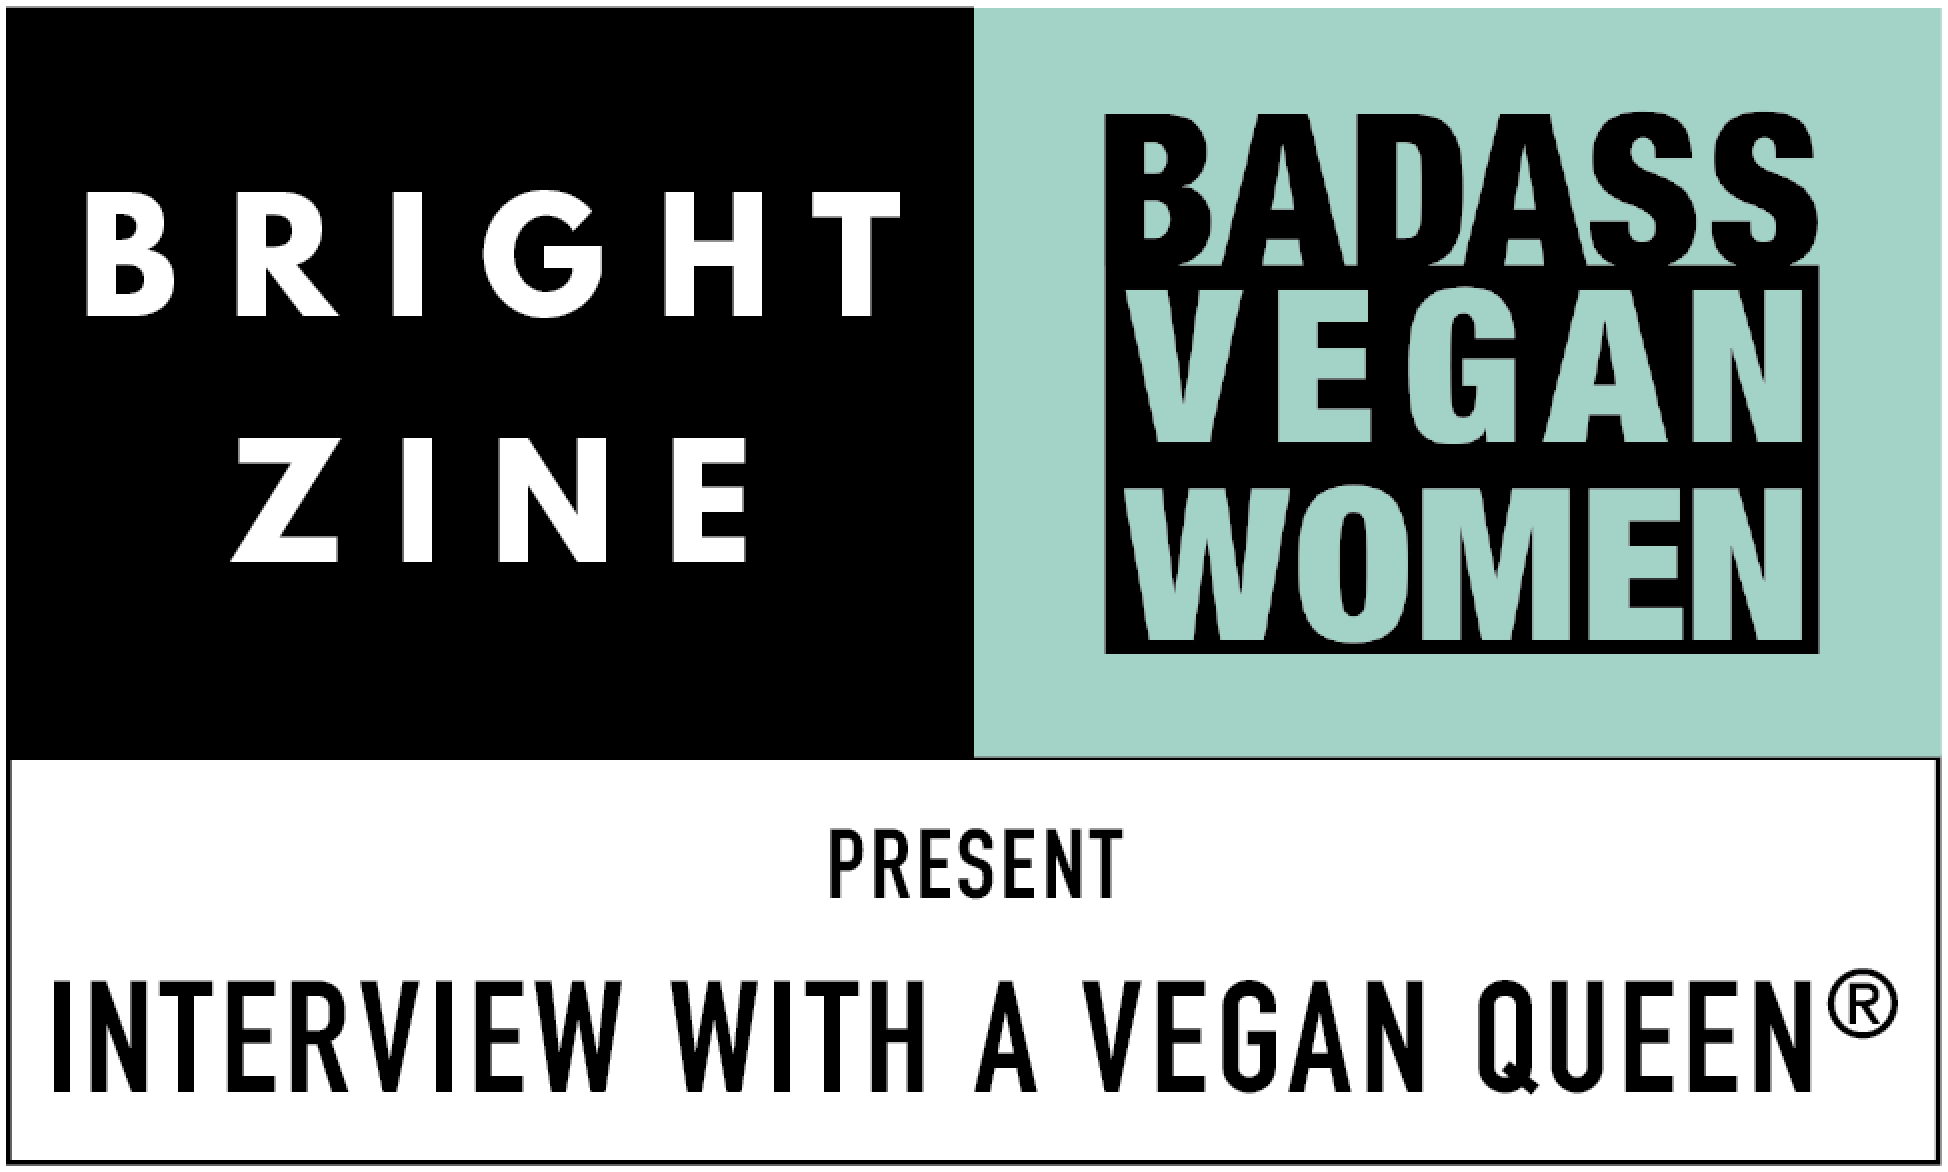 Interview With A Vegan Queen | Bright Zine x Badass Vegan Women 2.png